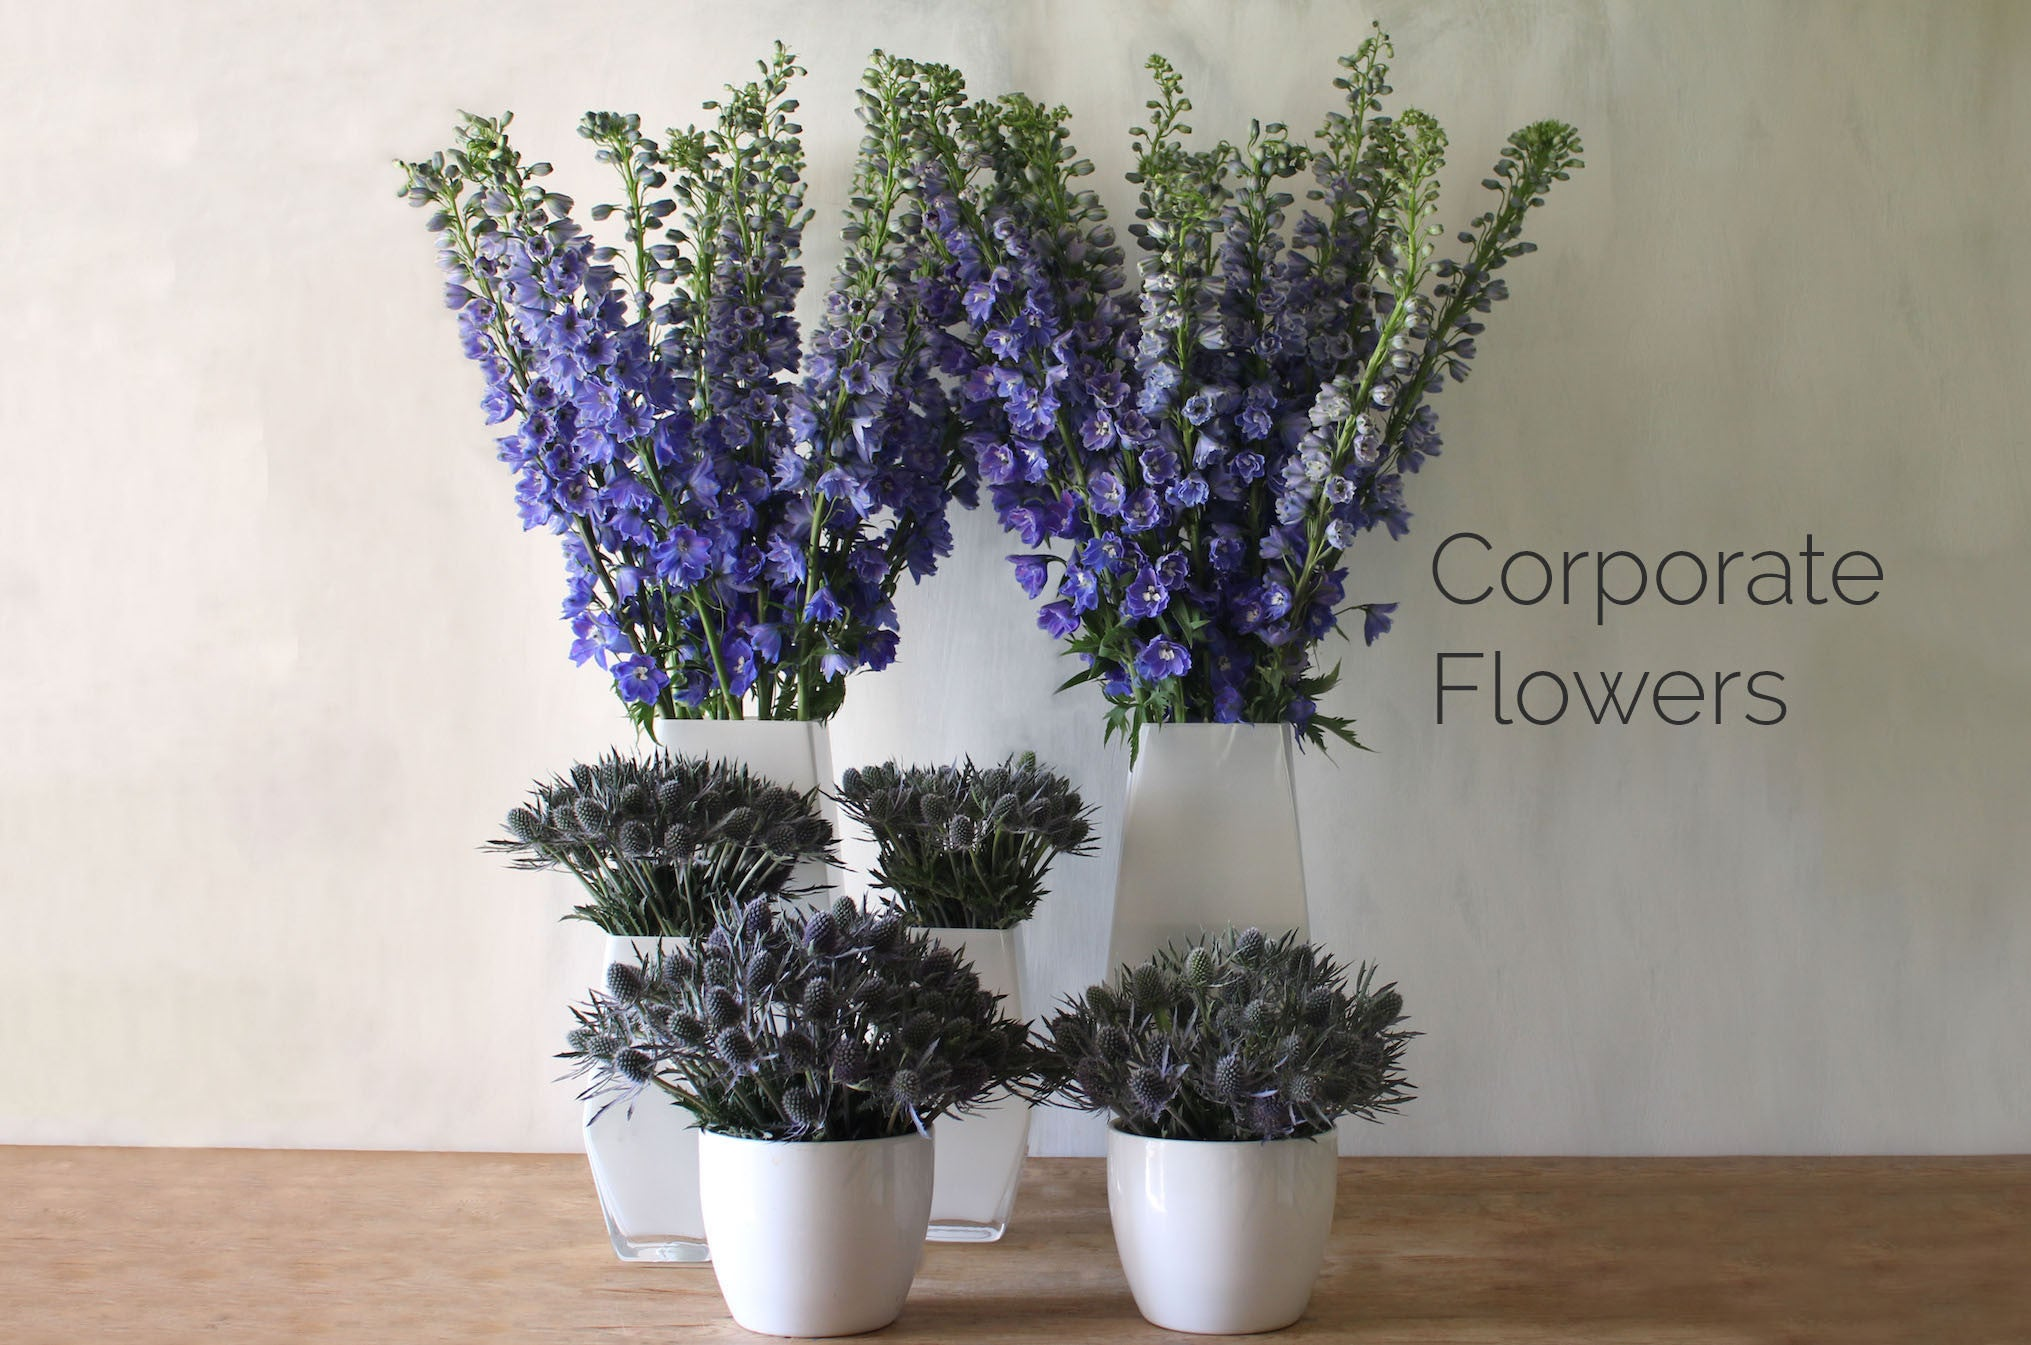 Wild Things Flowers Corporate Flowers